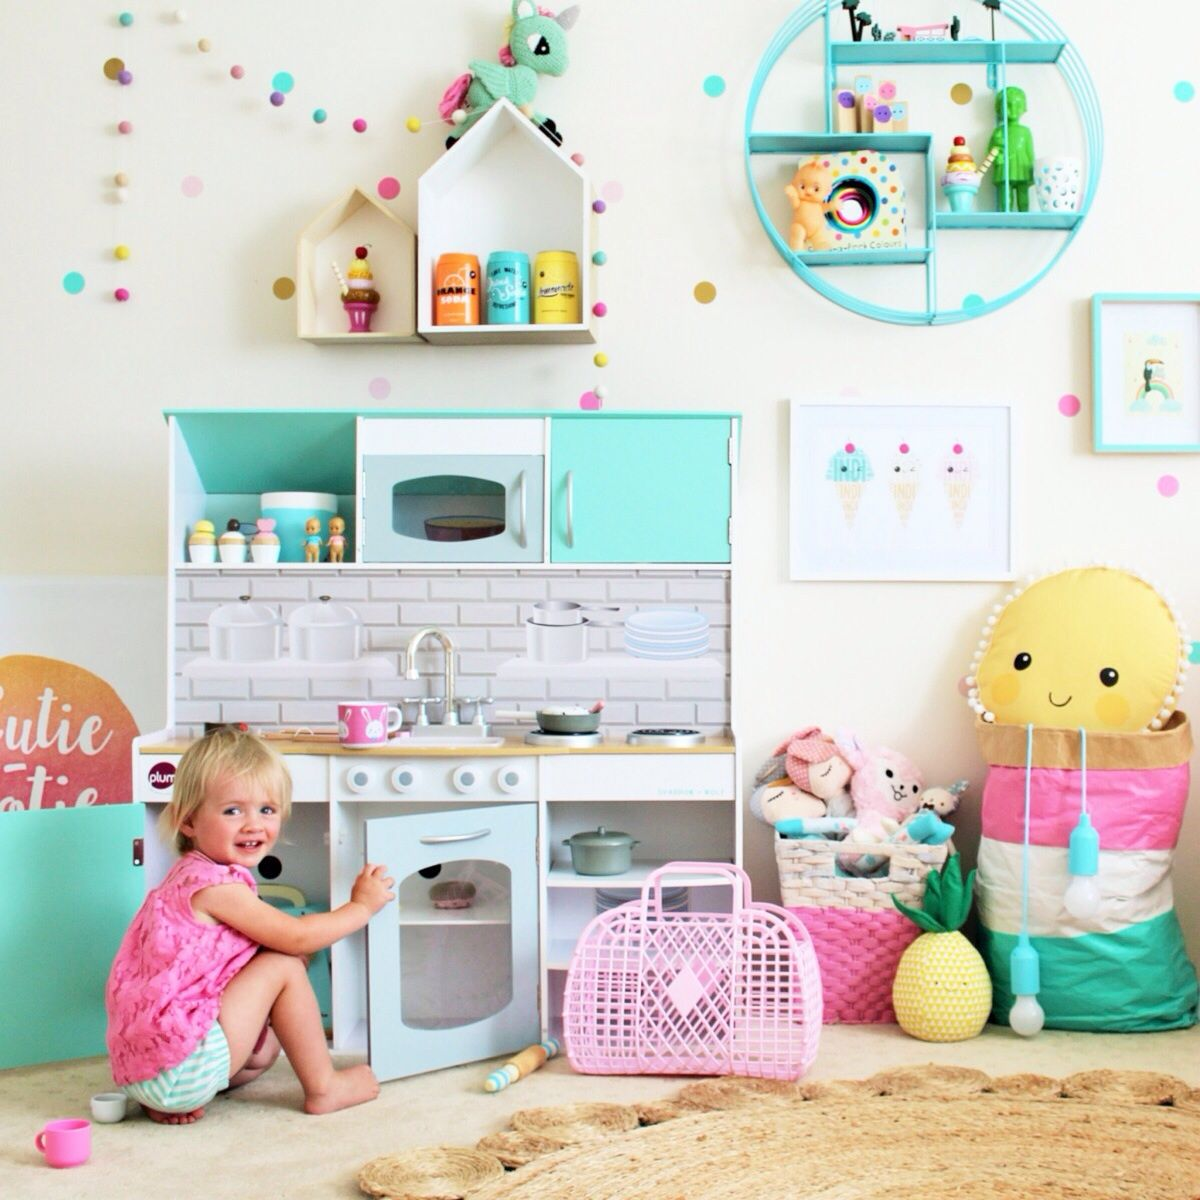 play kitchen peppermint playhouse adorable double sided kitchen kids rooms pinterest. Black Bedroom Furniture Sets. Home Design Ideas